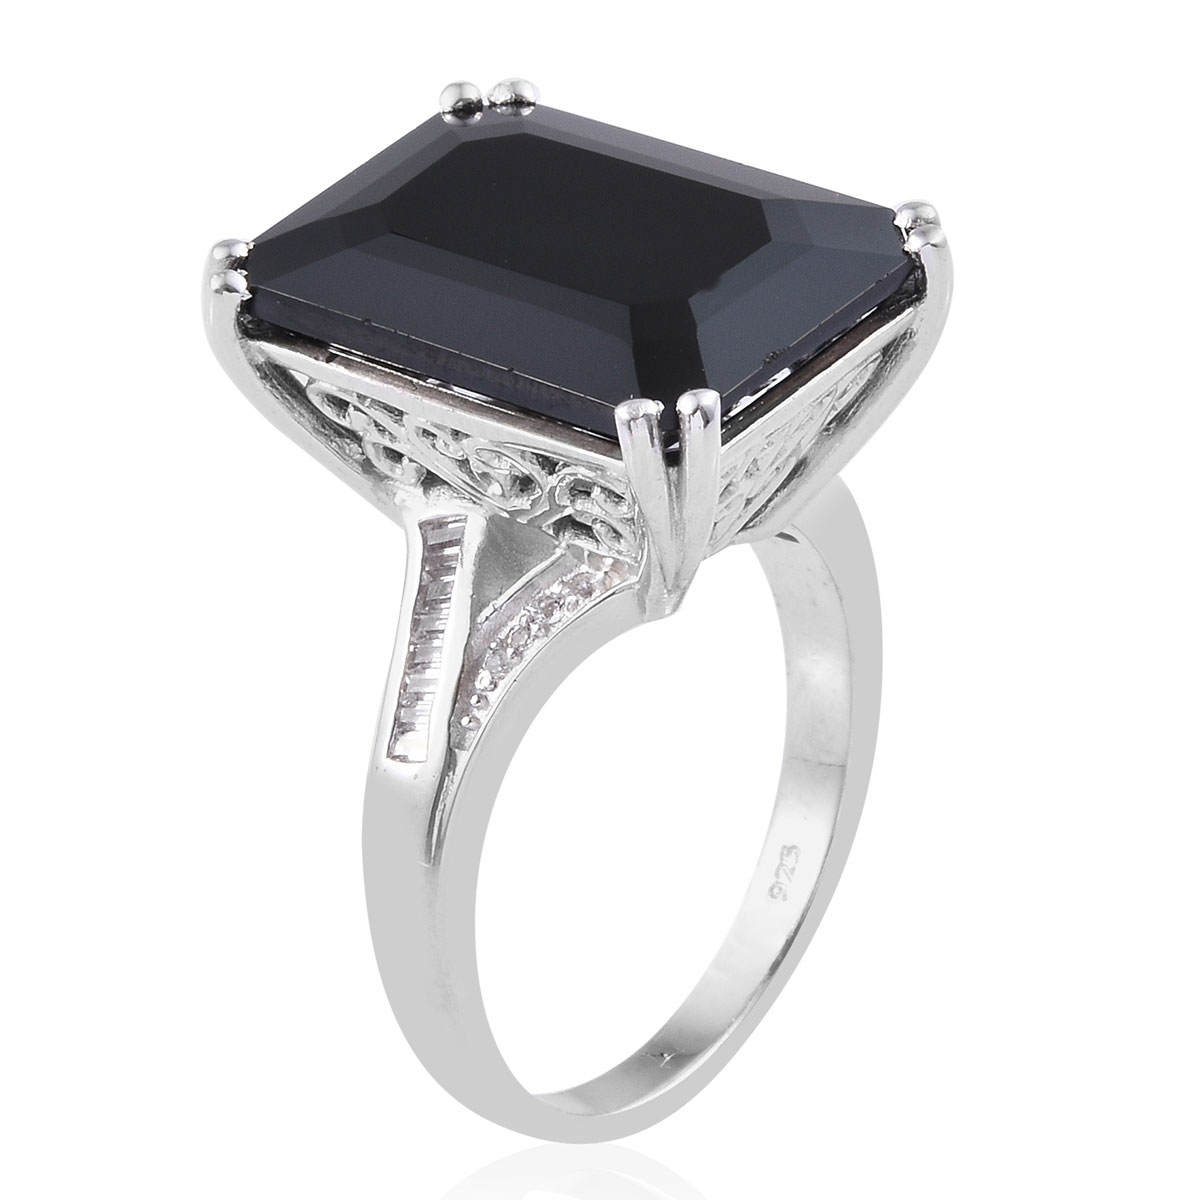 Thai Black Spinel, White Topaz Ring in Platinum Over Sterling Silver (Size 8.0) 26.44 ctw